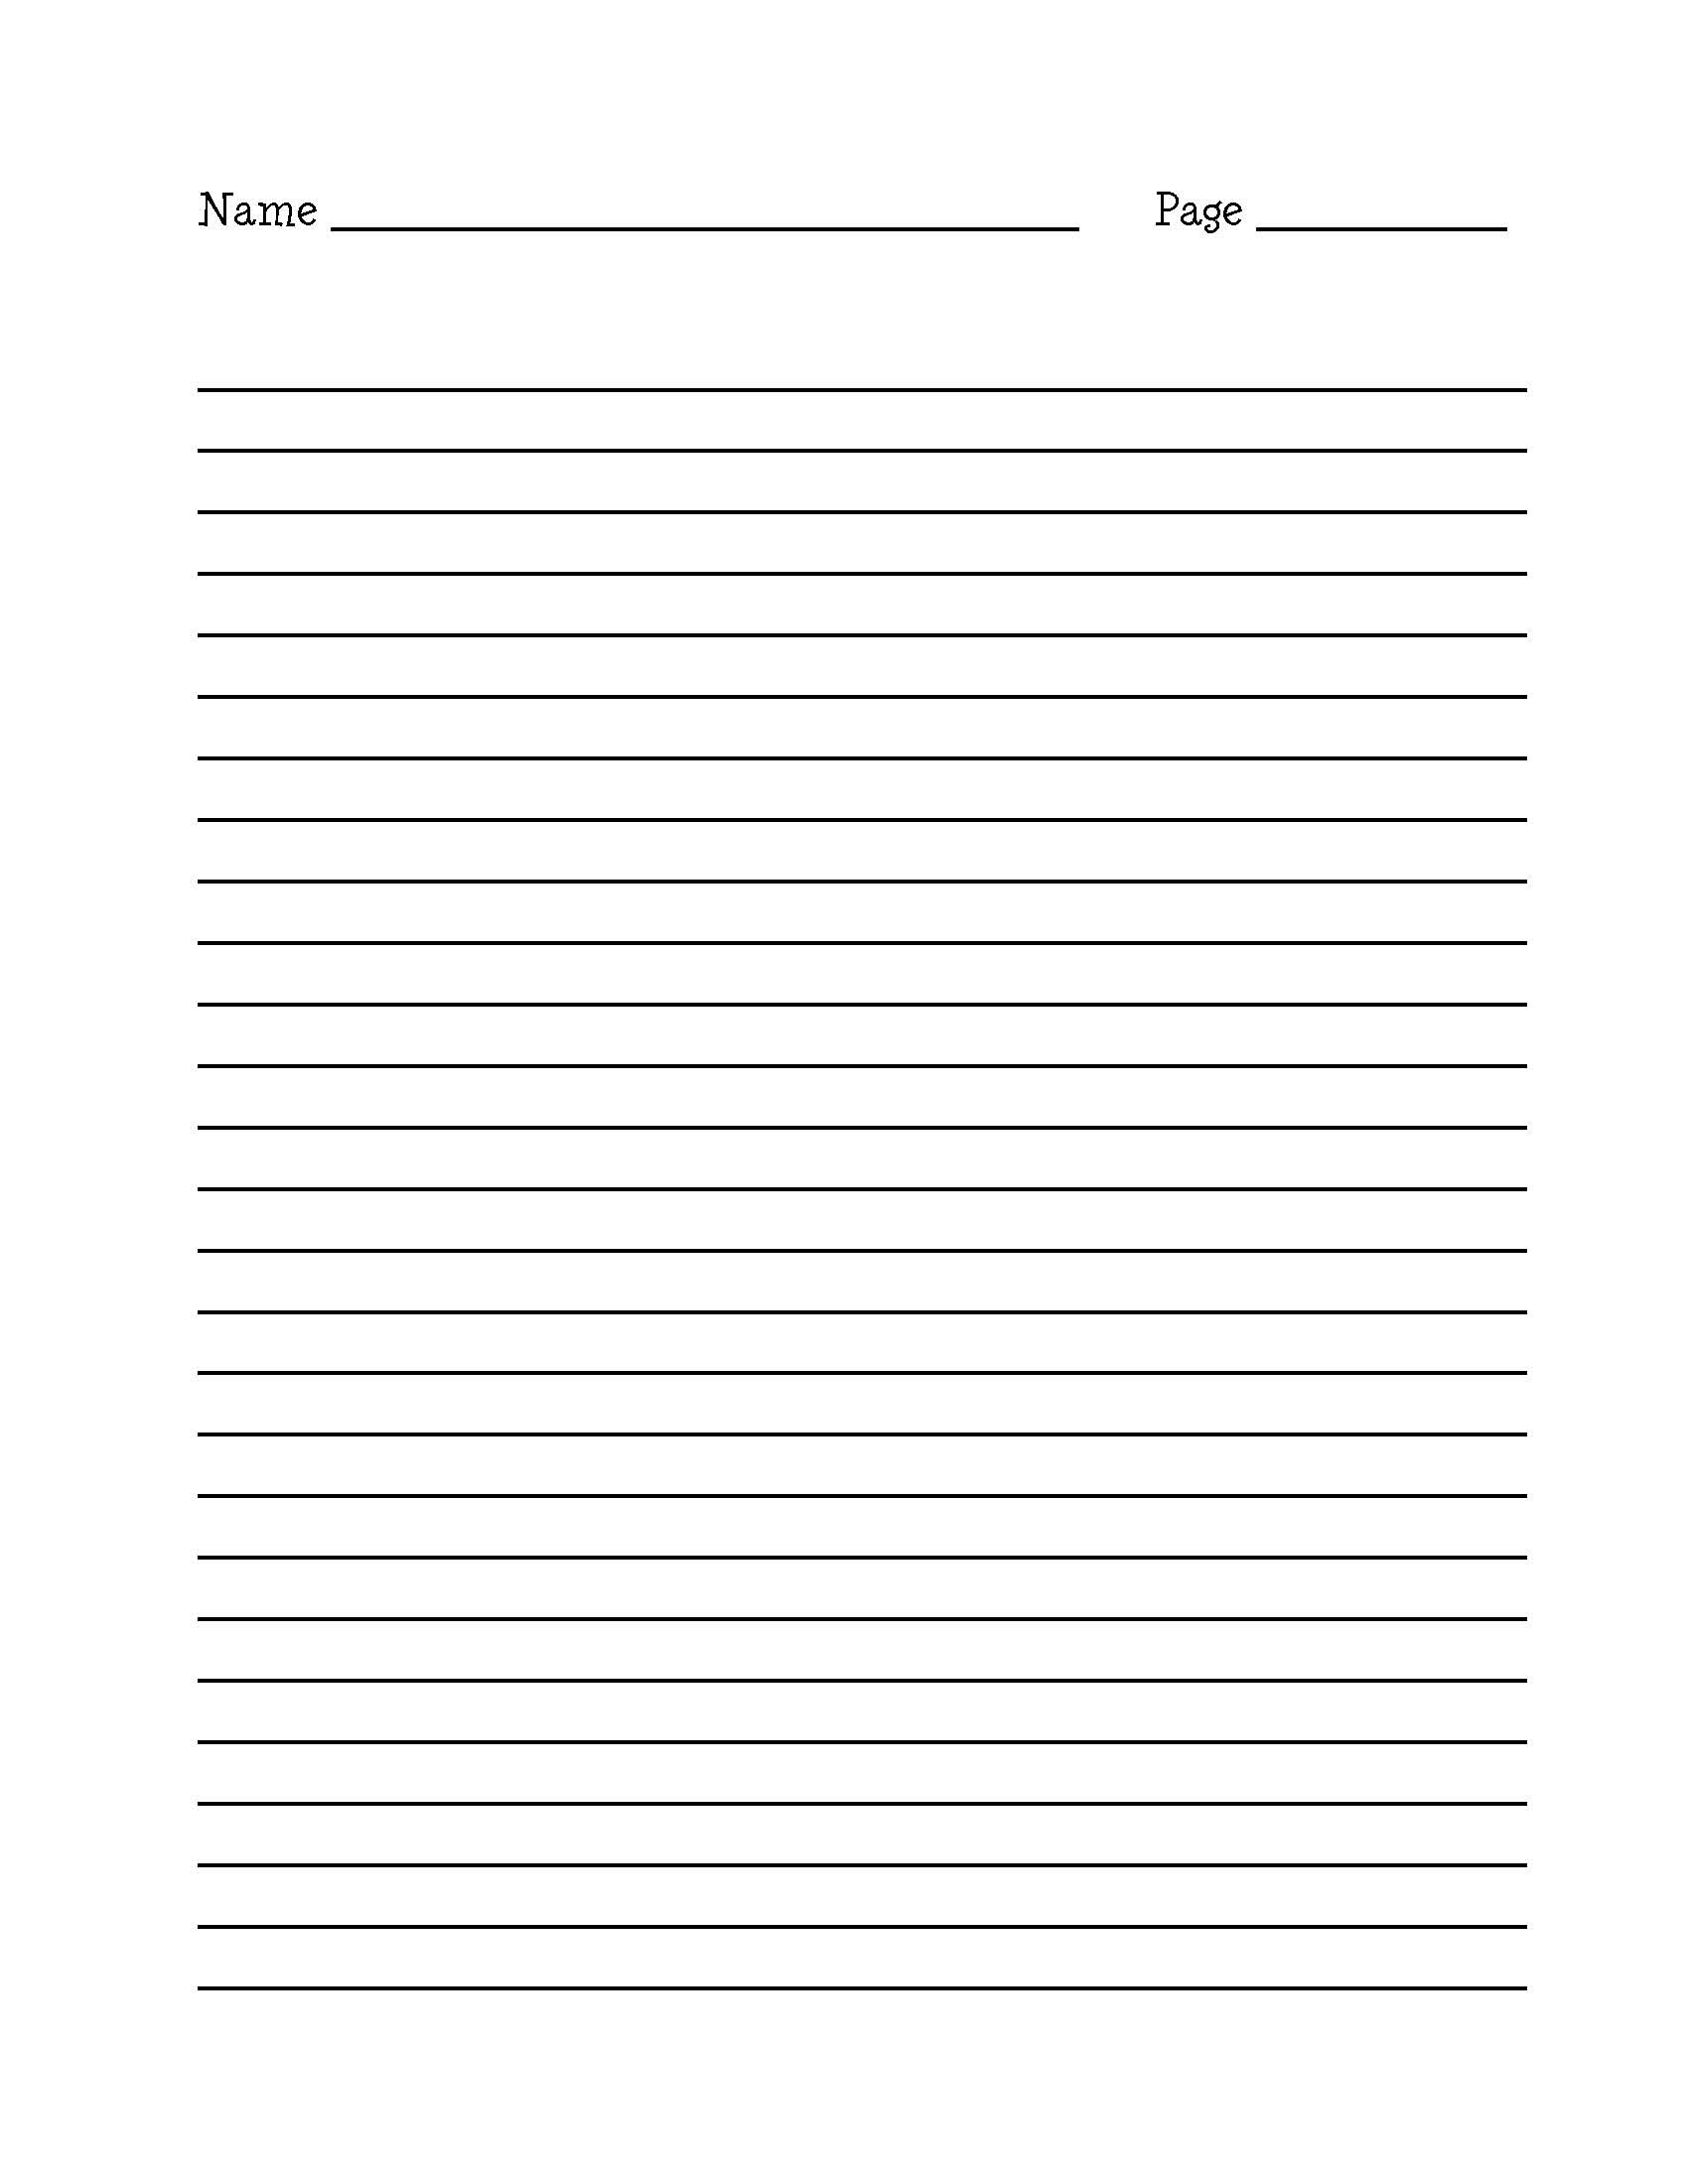 15+ Download A4 Lined Paper Templates   All Form Templates - Free Printable Lined Writing Paper